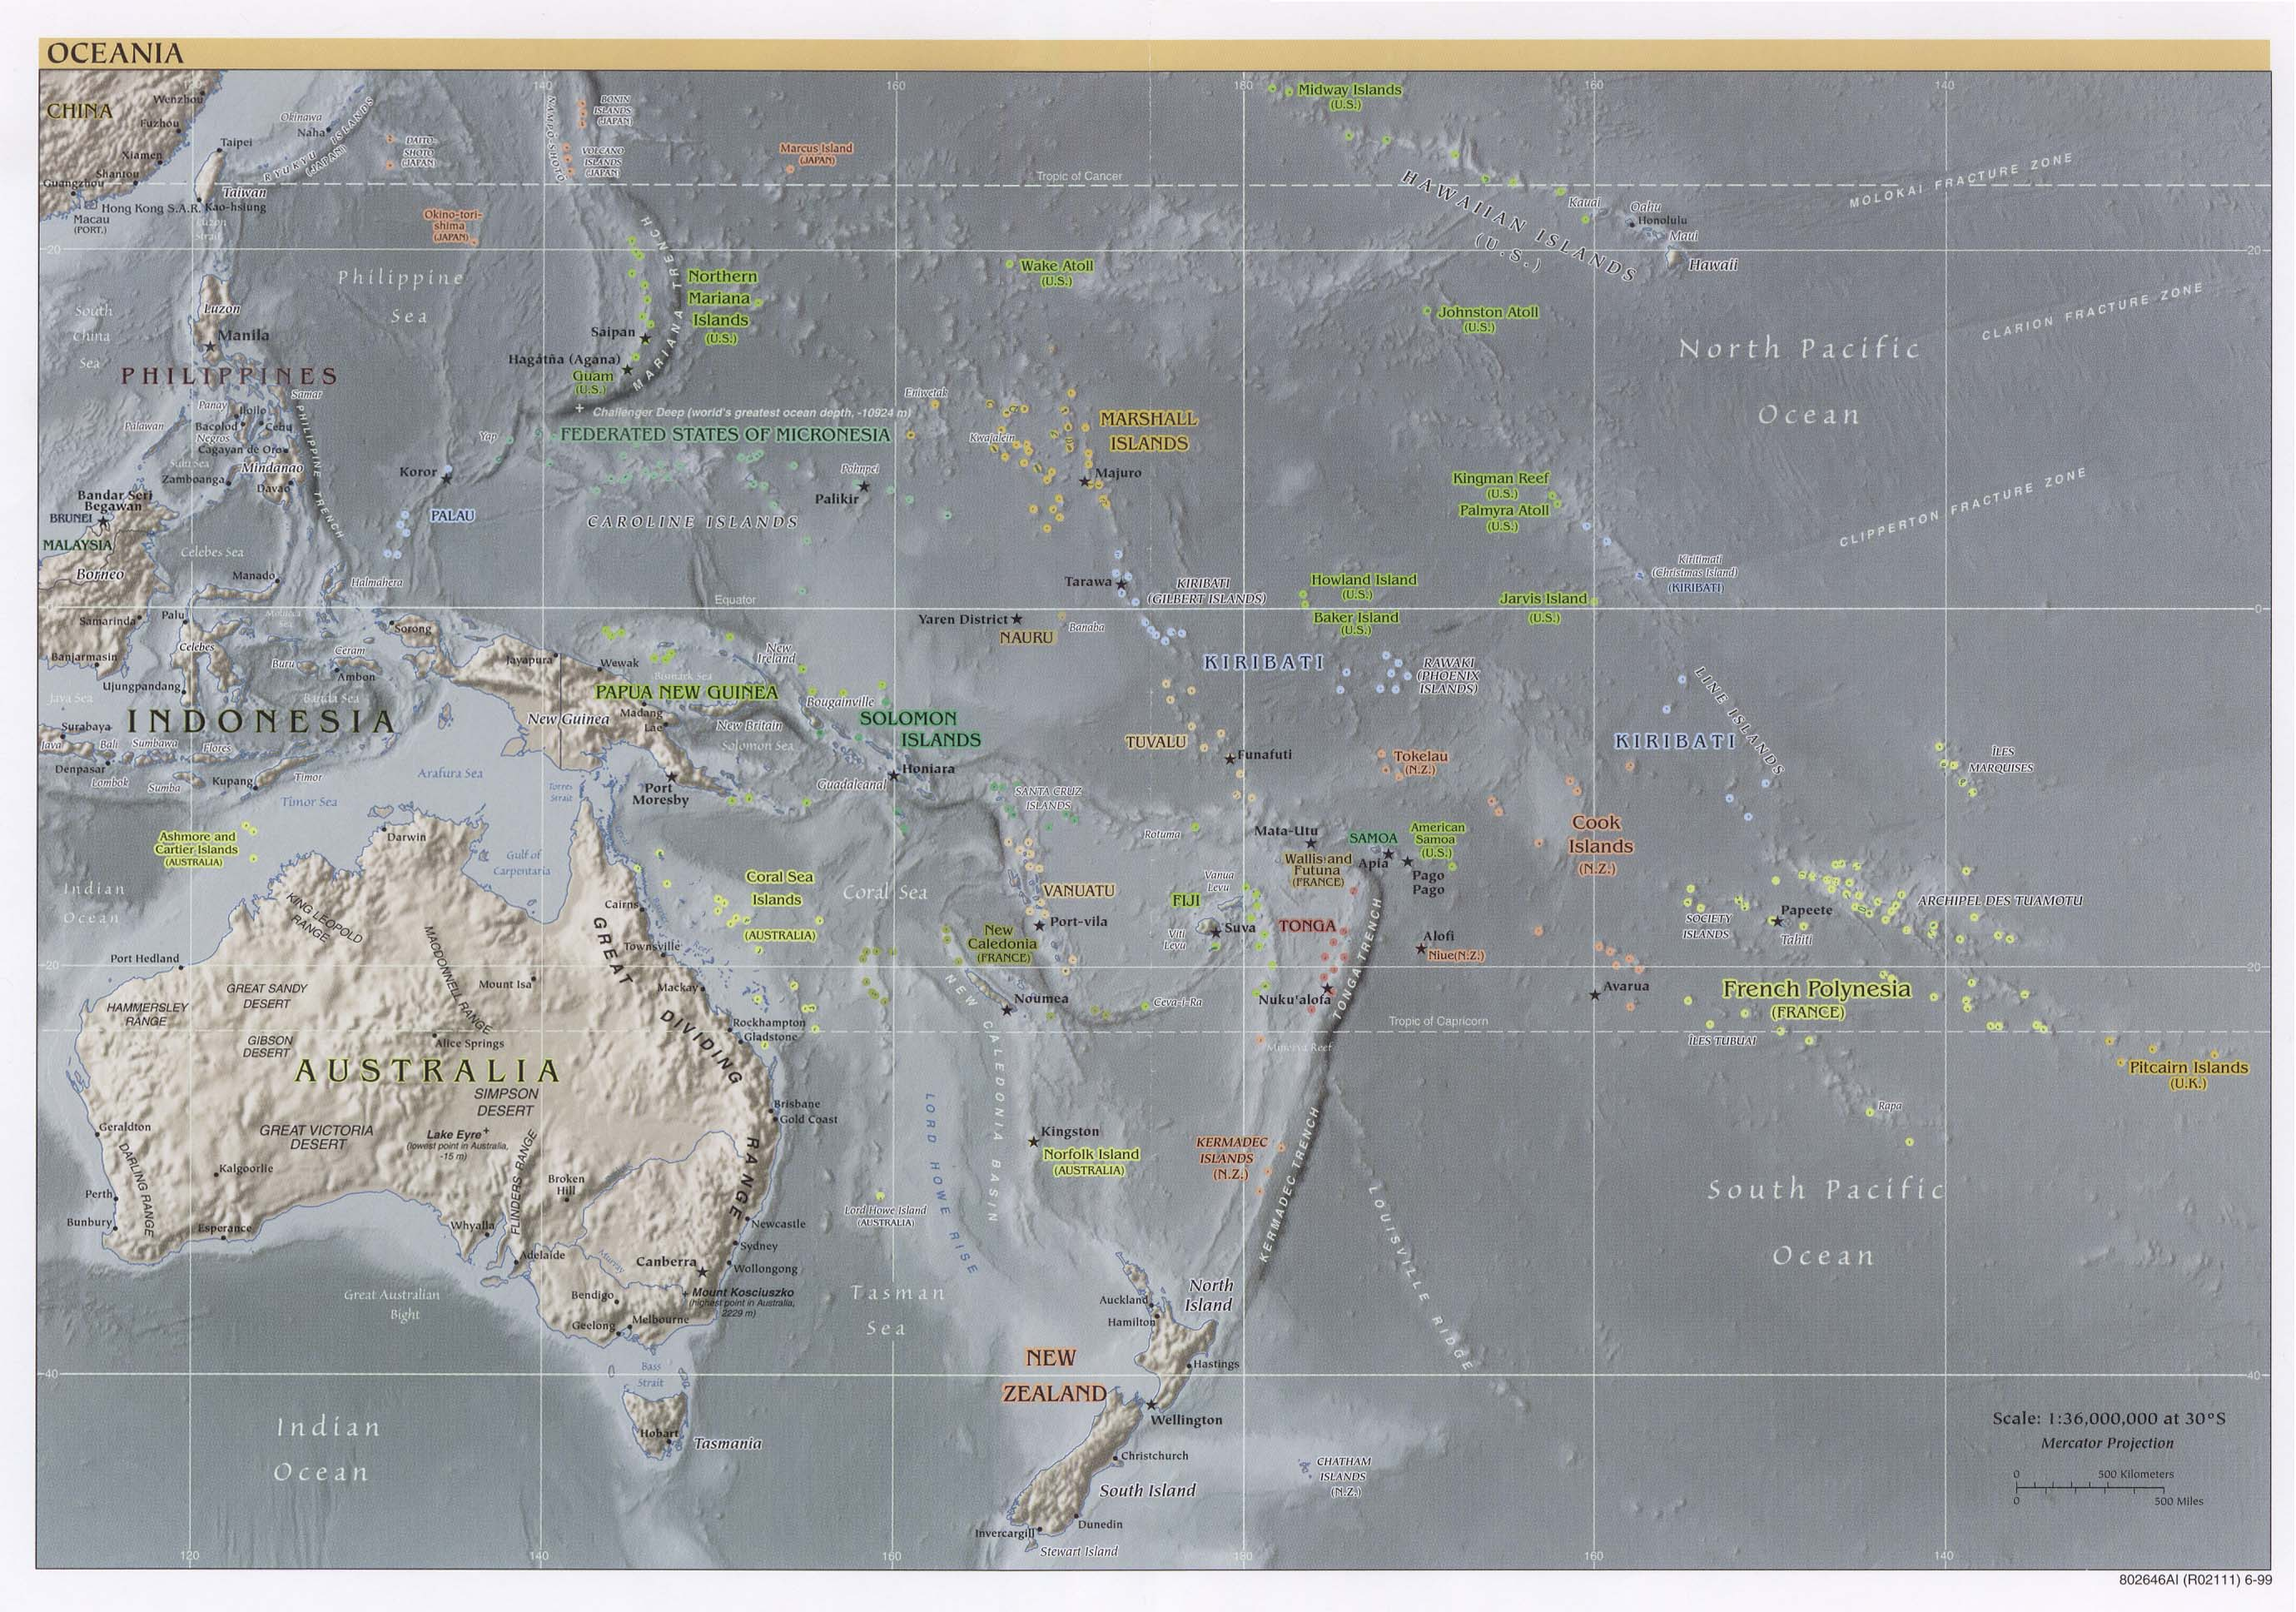 Oceania physical map 1999